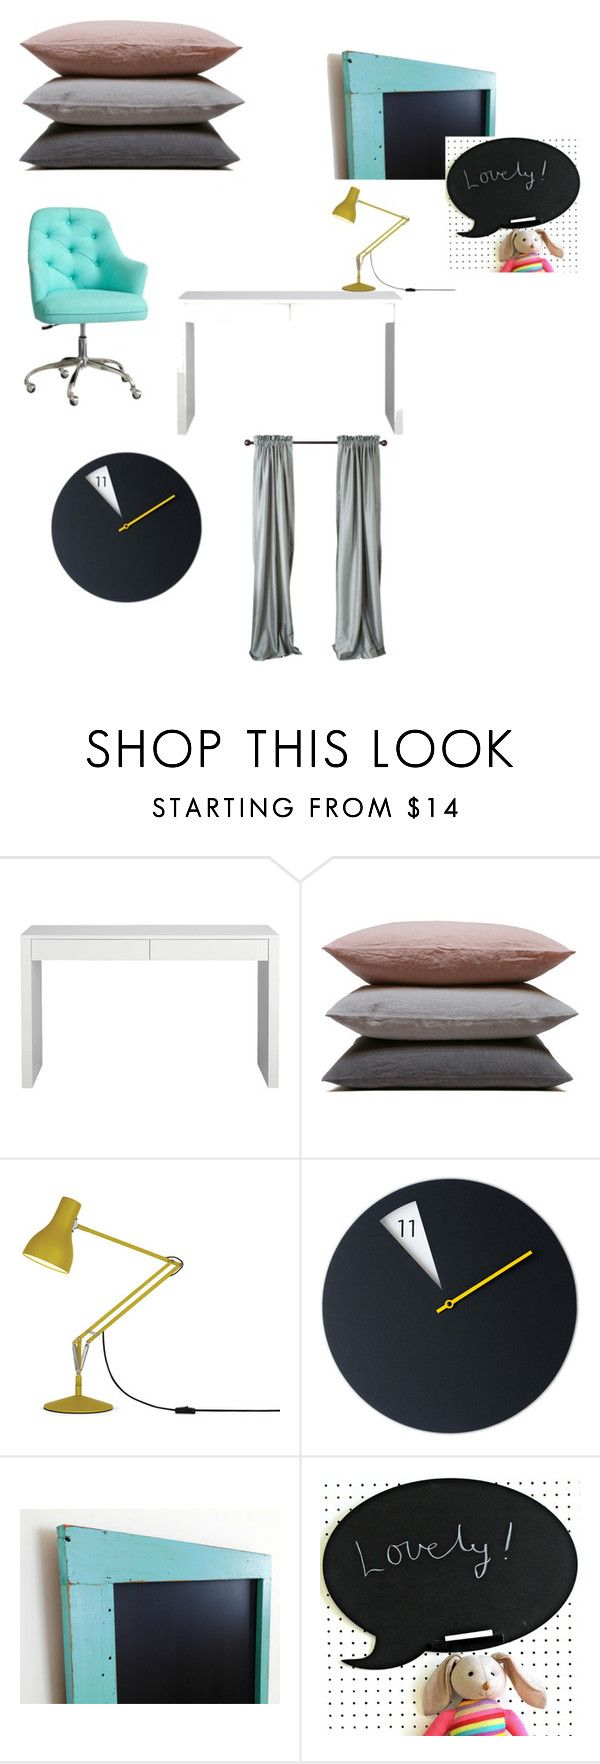 koncepcja 1 by magdalena-grycz on Polyvore featuring interior, interiors, interior design, dom, home decor, interior decorating, CB2, Anglepoise and Hawkins